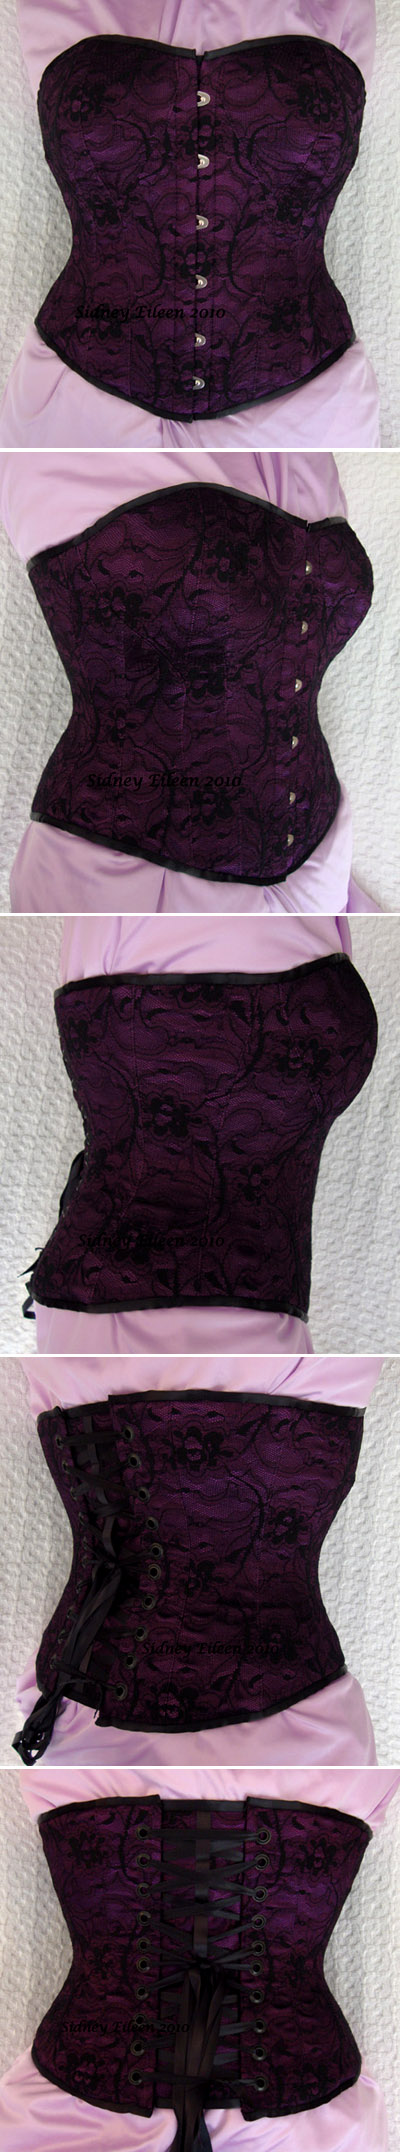 Purple and Black Lace Sweetheart - All Views, by Sidney Eileen